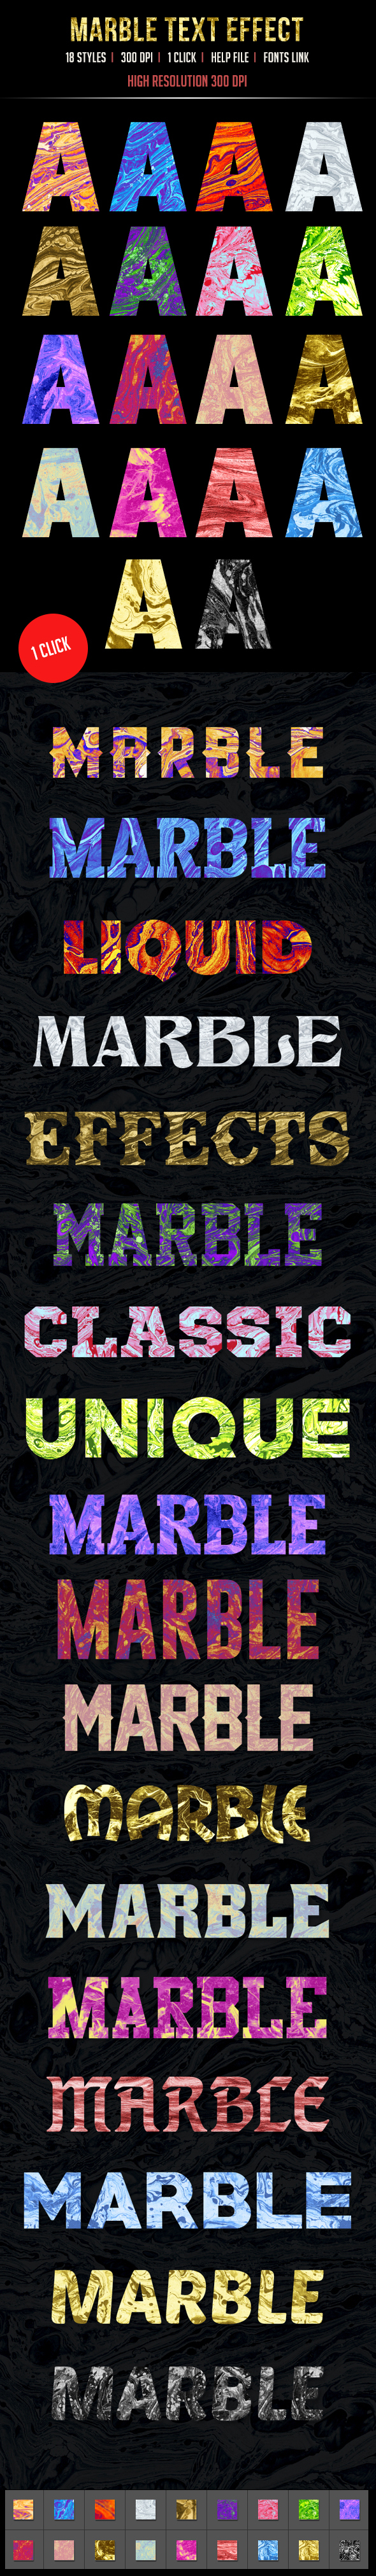 18 Marble Text Effects